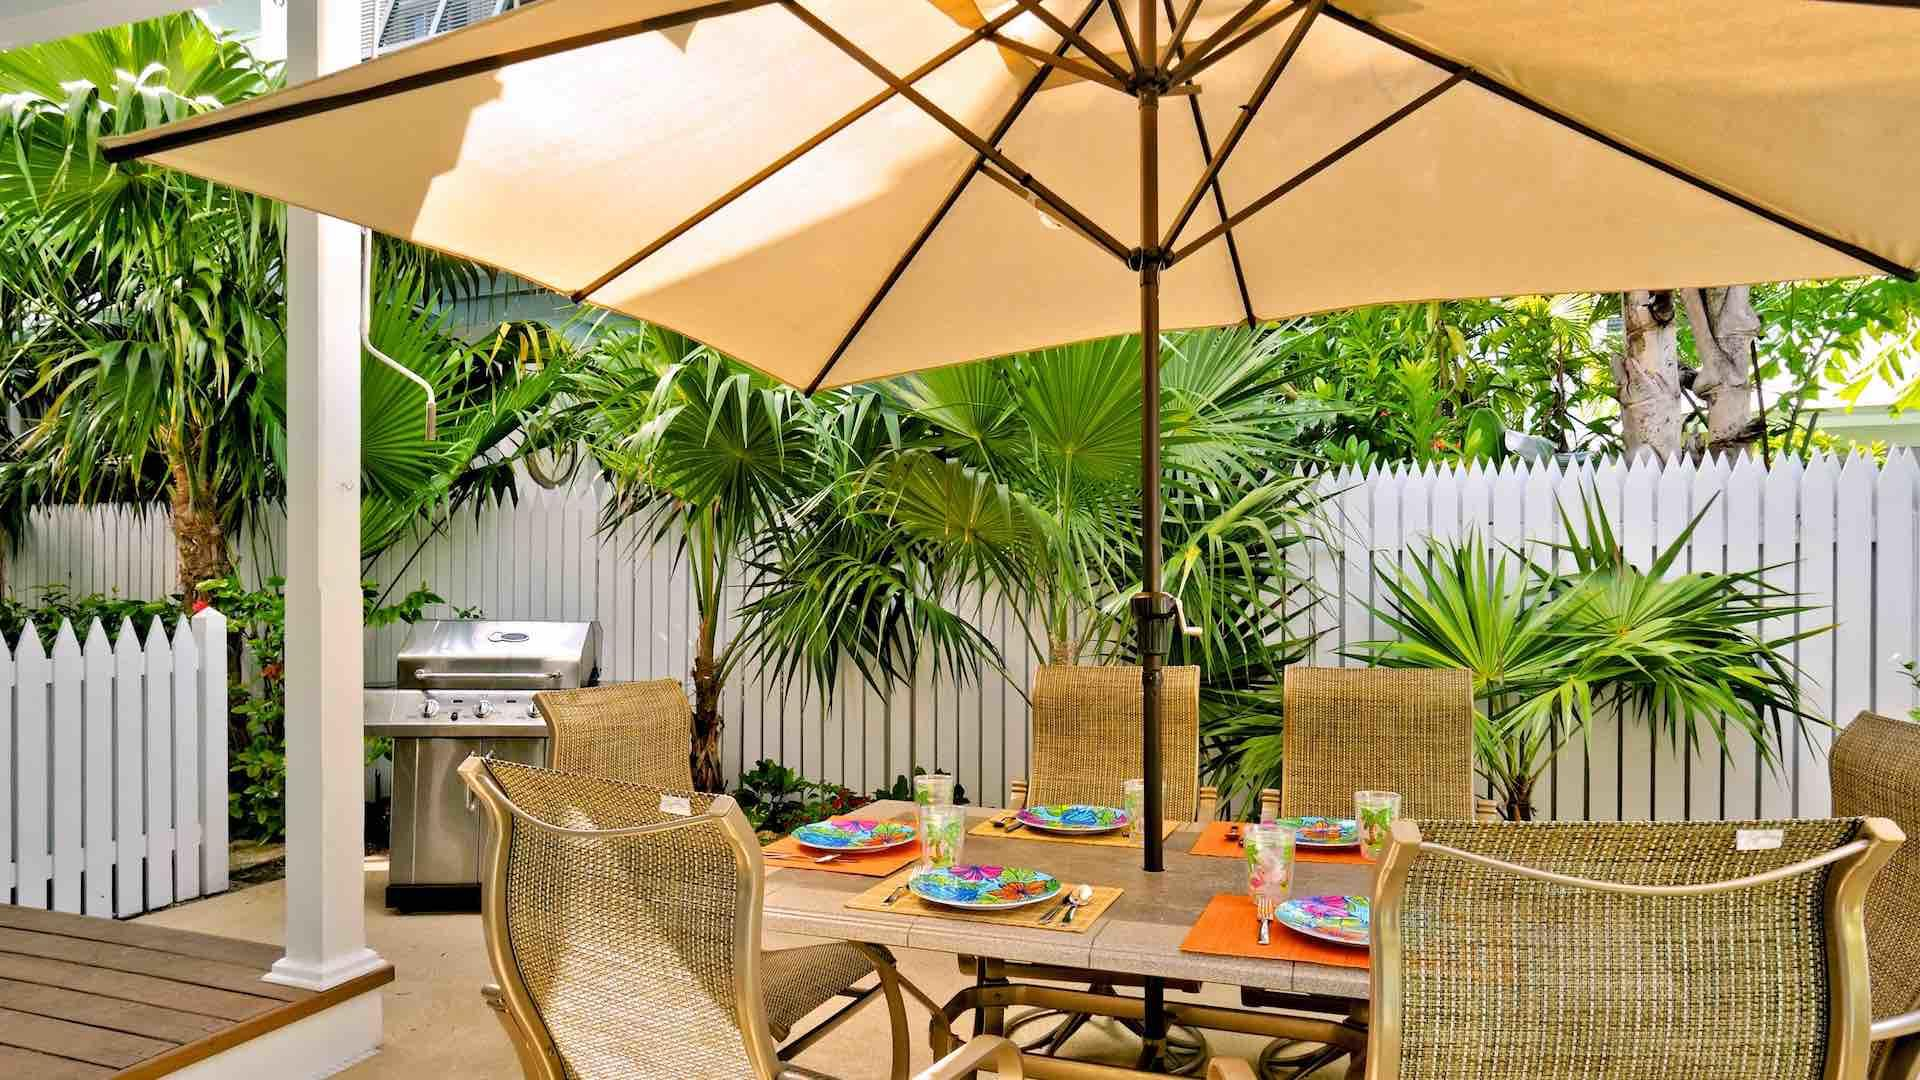 You can dine under the stars at the outdoor dining set for six persons...